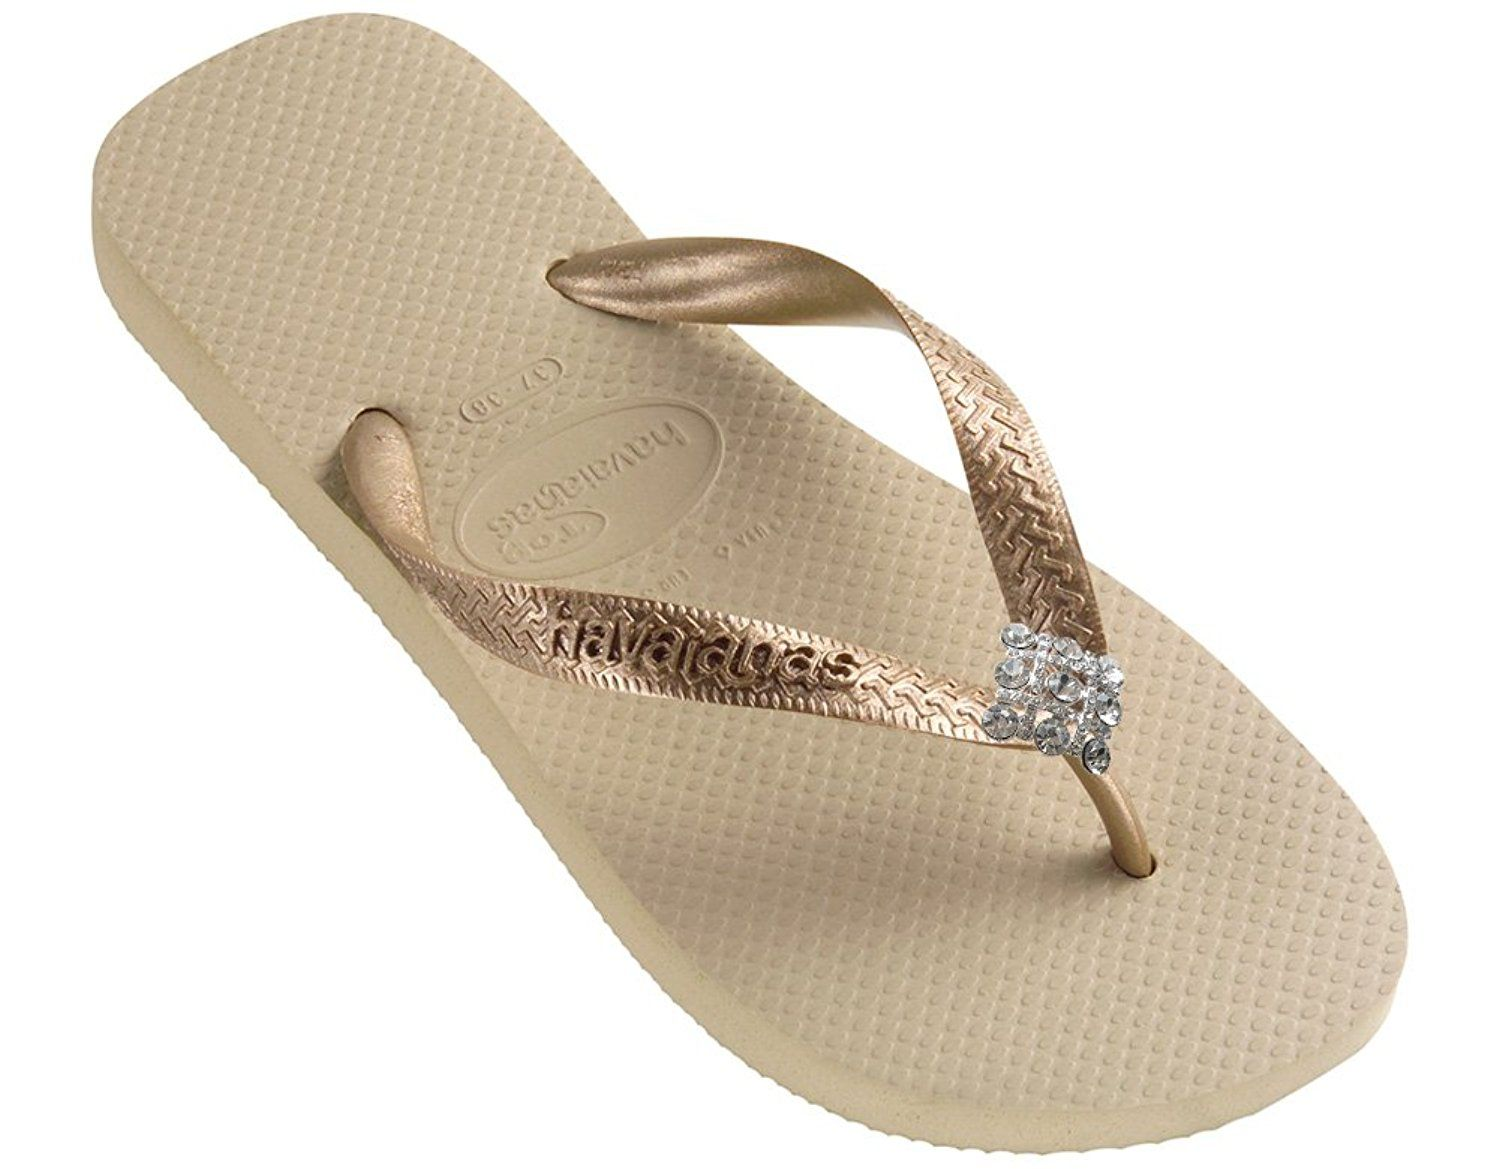 Dini's HAVAIANAS Fashion Jeweled Flip Flops Crystal Diamonds Women's Sandals